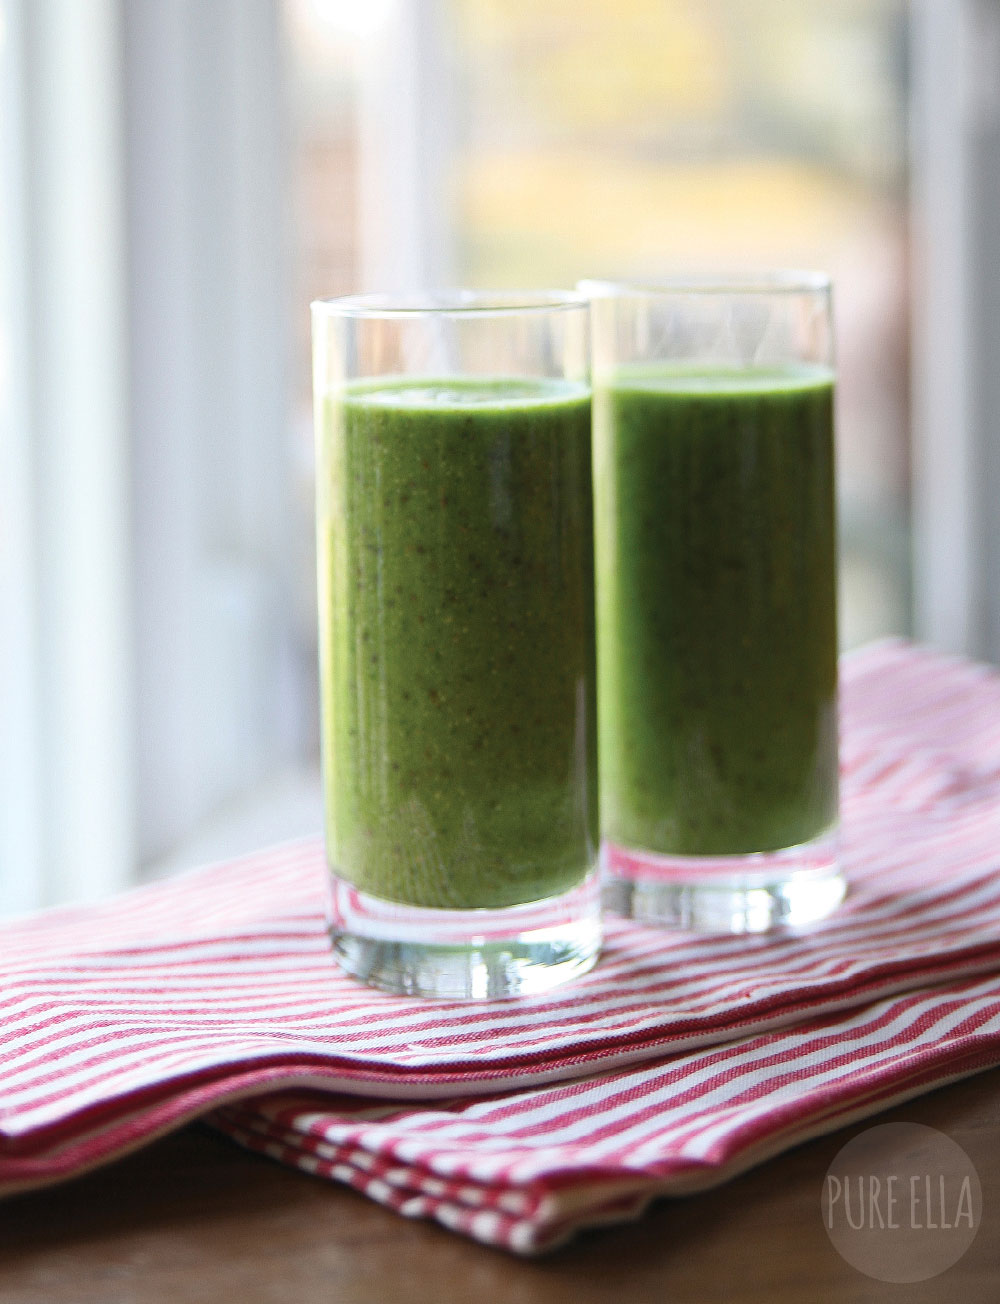 Pure-Ella-Good-Green-Super-Smoothie-vegan-gluten-free-protein-and-probiotic-smoothie4